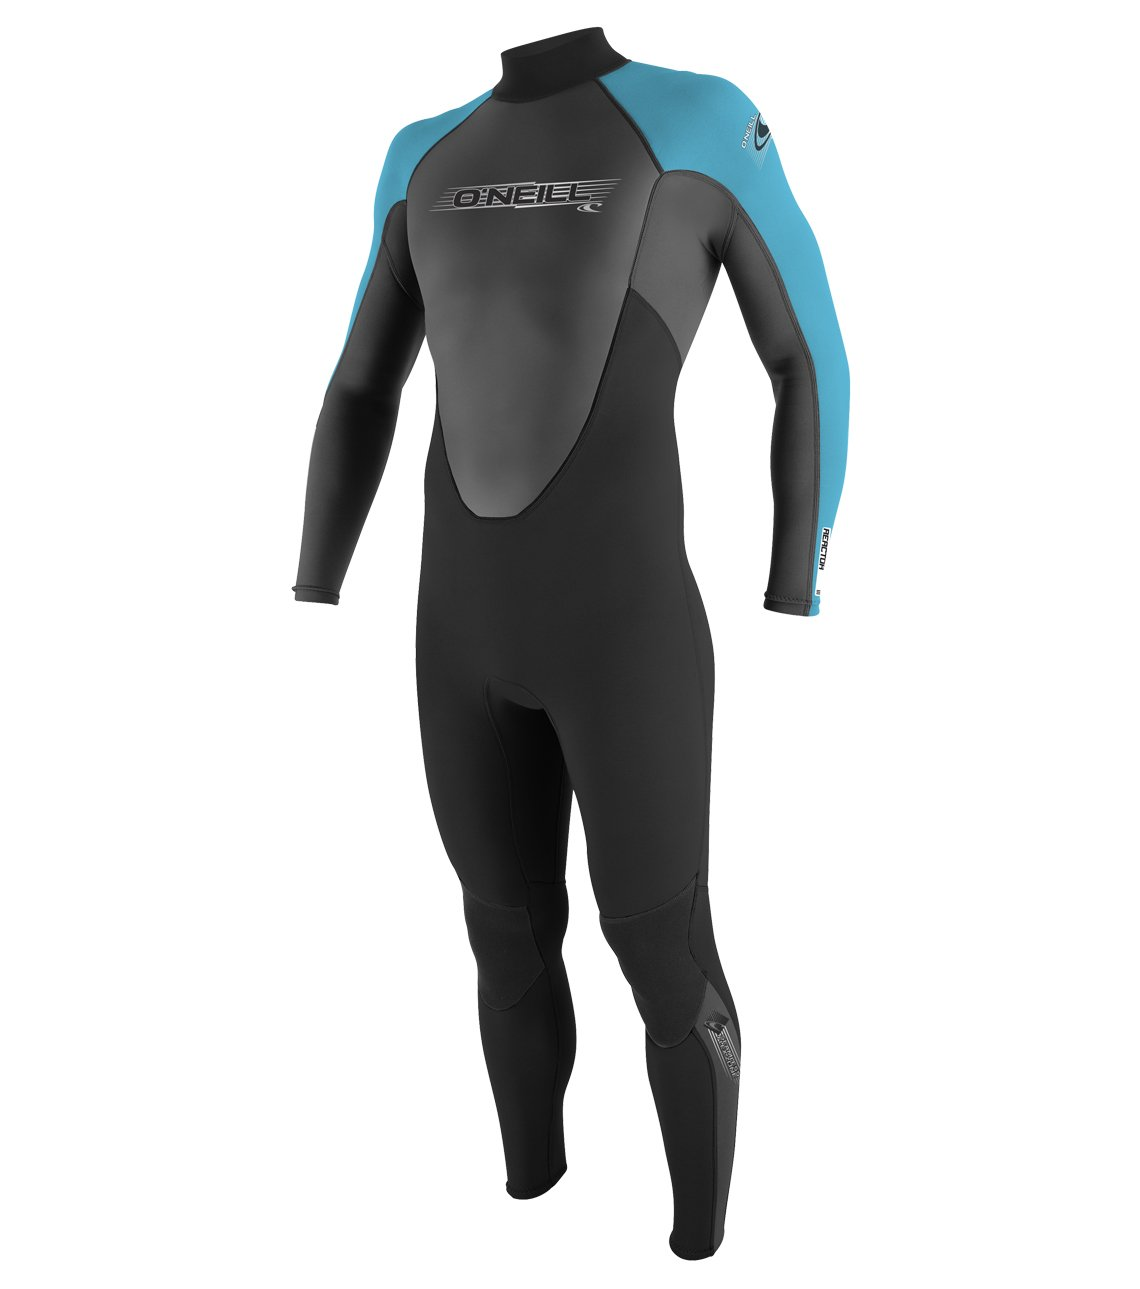 O'Neill Youth Reactor 3/2mm Back Zip Full Wetsuit, Black/Graphite/Turquoise, 8 by O'Neill Wetsuits (Image #1)